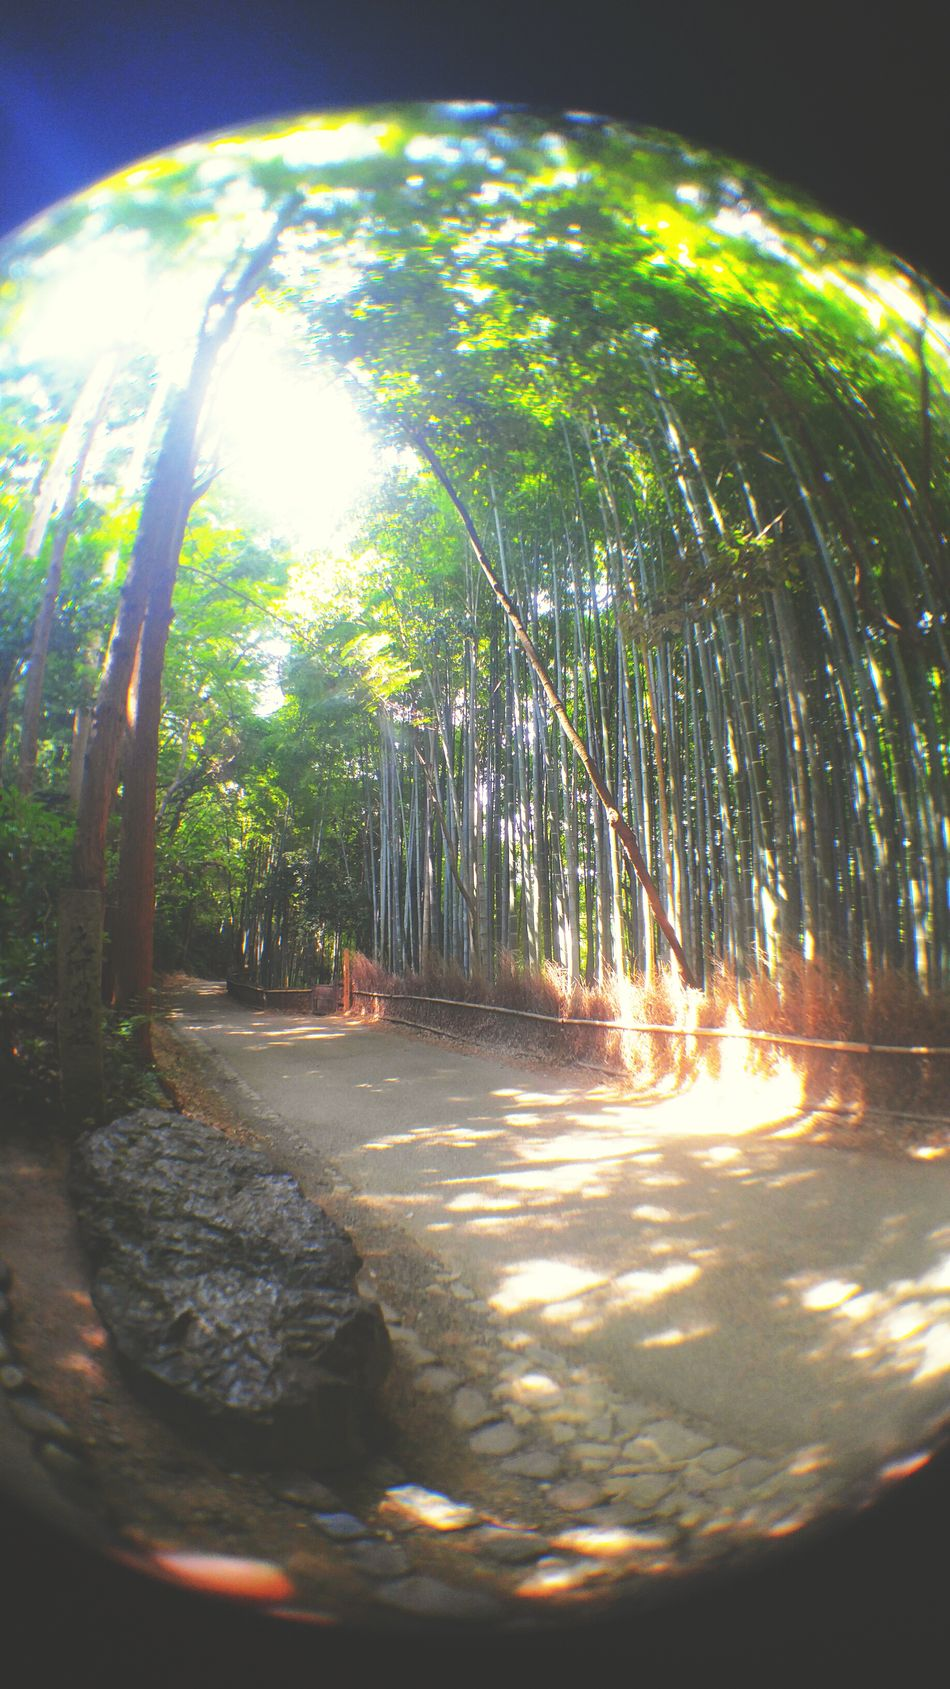 Beauty In Nature Latergram Bamboo From My Point Of View Bamboo Forest Latepost EyeEm Gallery Sunlight Travel Photography Melancholic Landscapes Japan Photography Bamboo Grove Afterlight 京都 EyeEm Best Shots Tranquility LGV10 Fish Eye Fish Eye Lens Fisheye Landscape_Collection Bamboo - Plant Smartphonephotography 嵐山 Being A Tourist